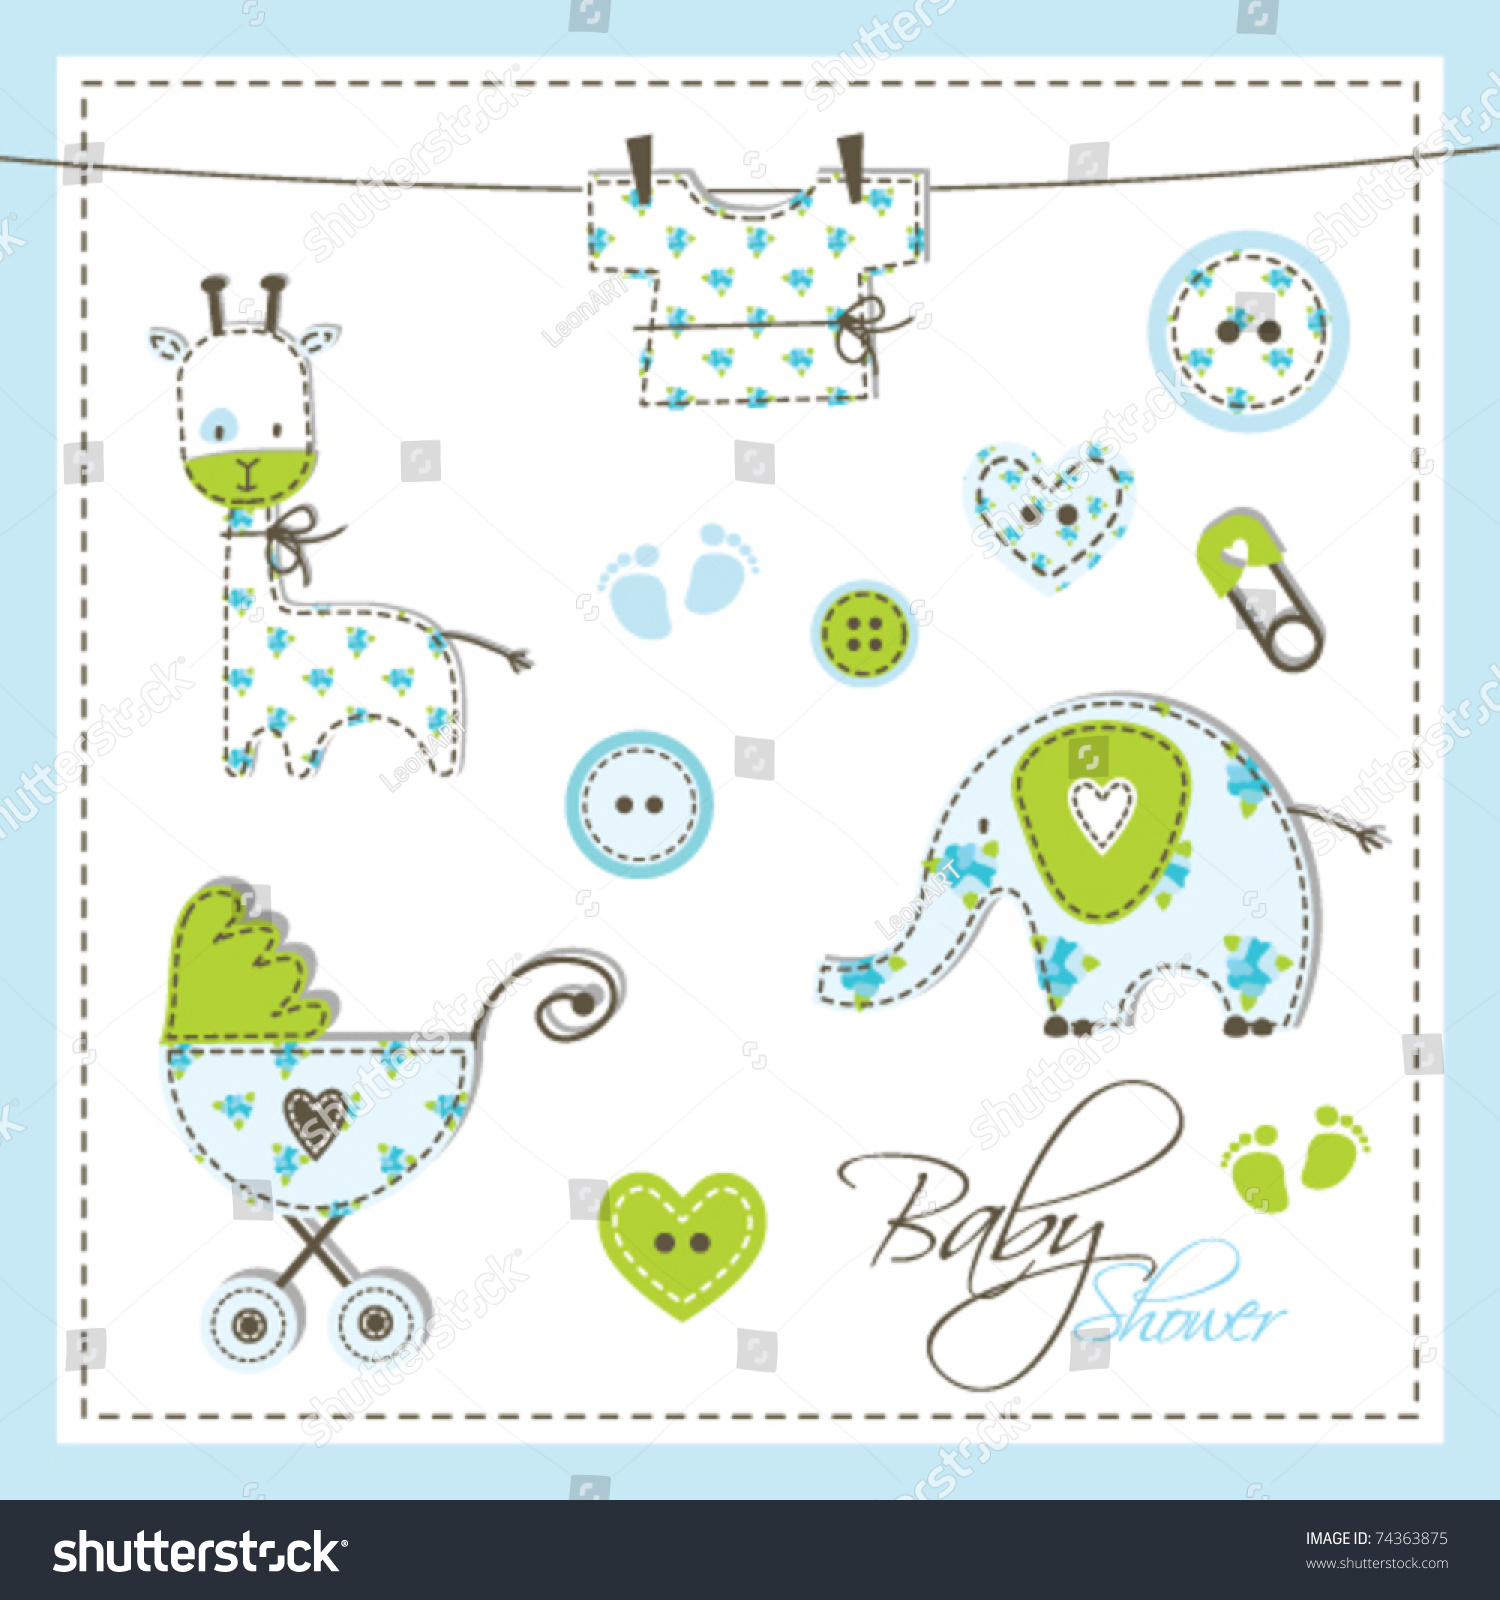 baby boy shower drawingsfor baby shower invitation card scrapbook